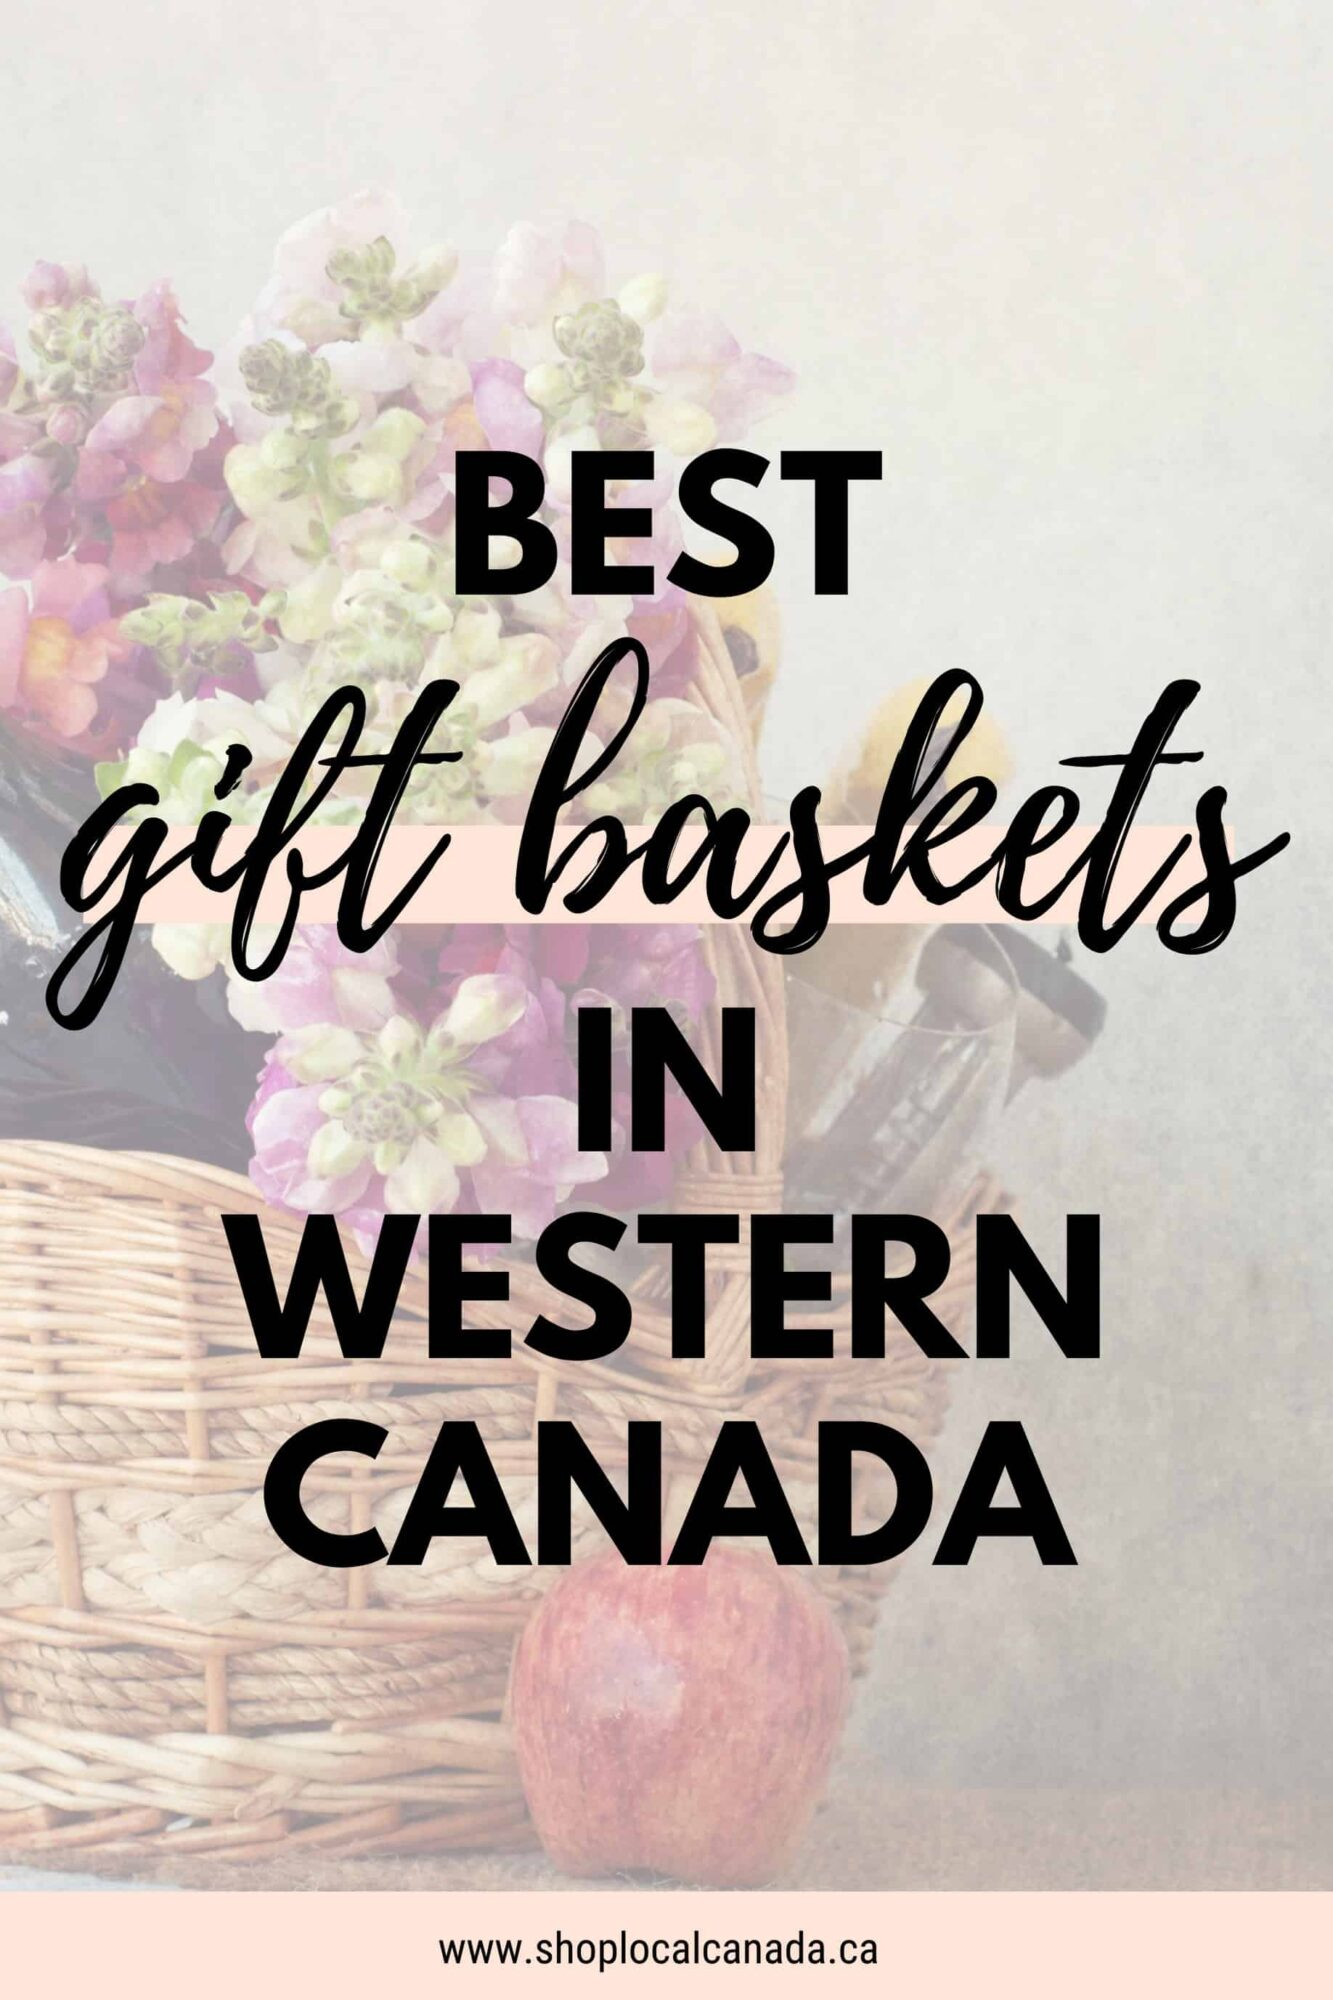 Best Gift Baskets in Western Canada